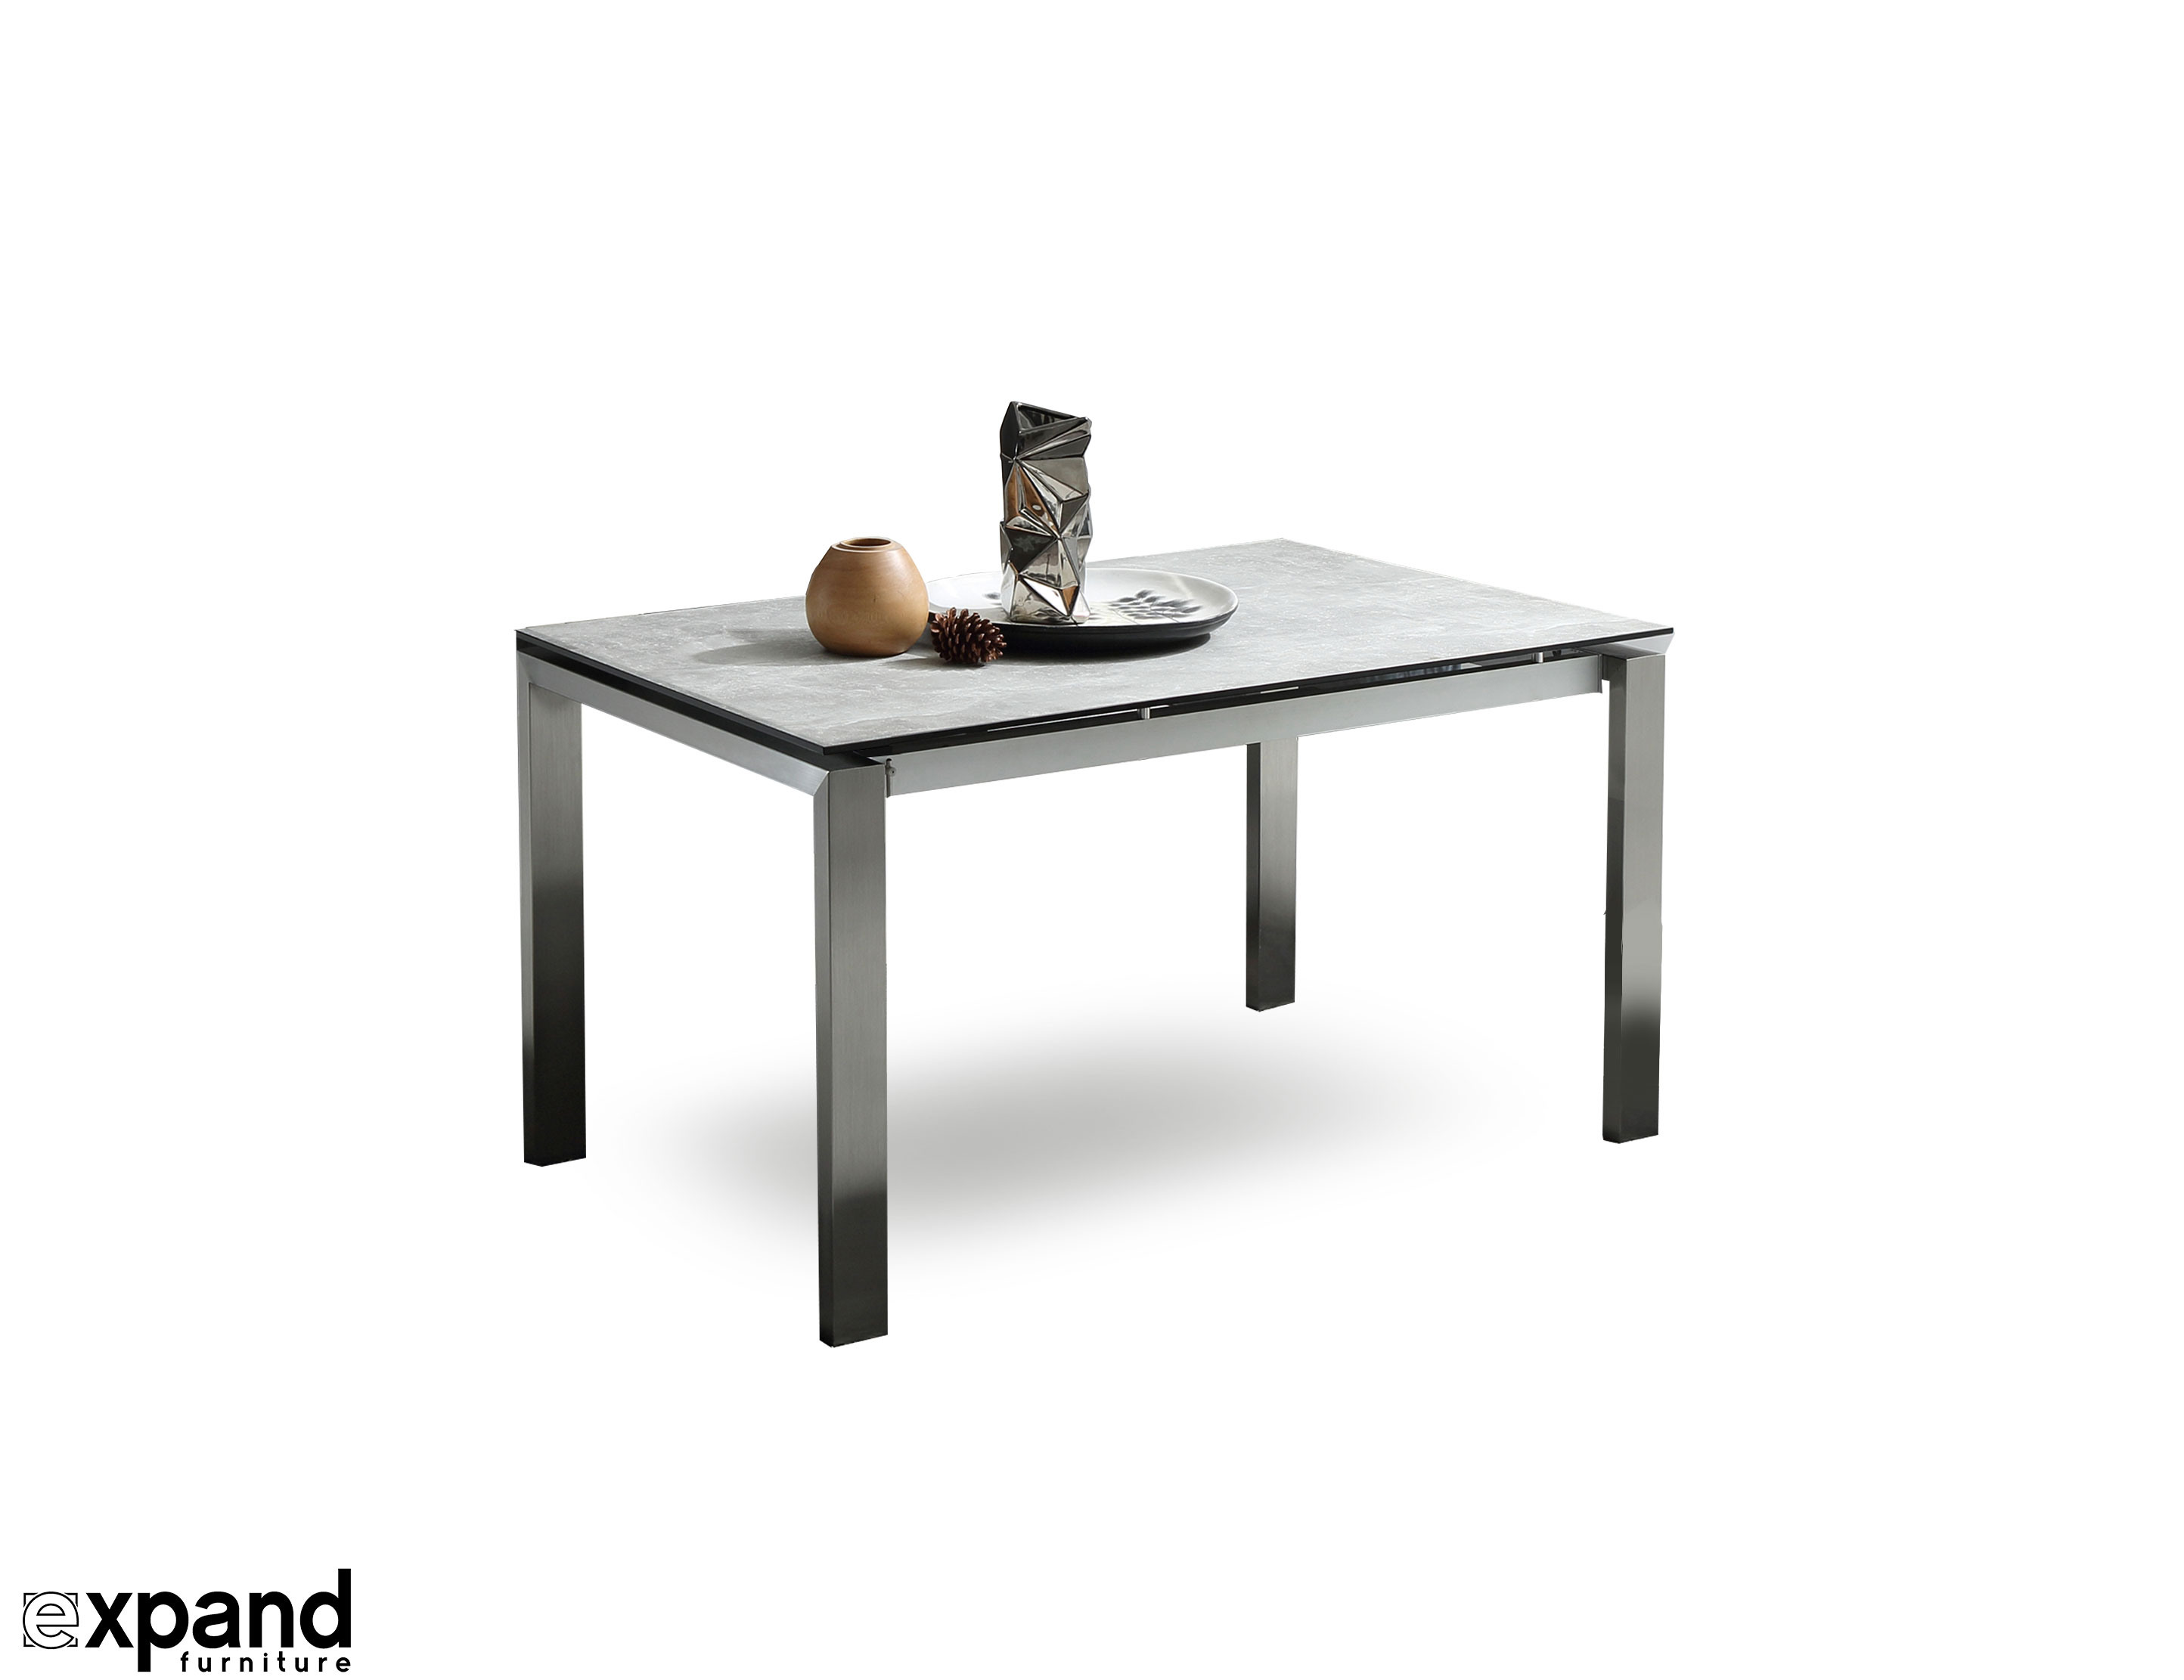 The Slate Grey Ceramic Glass Top Table Expand Furniture